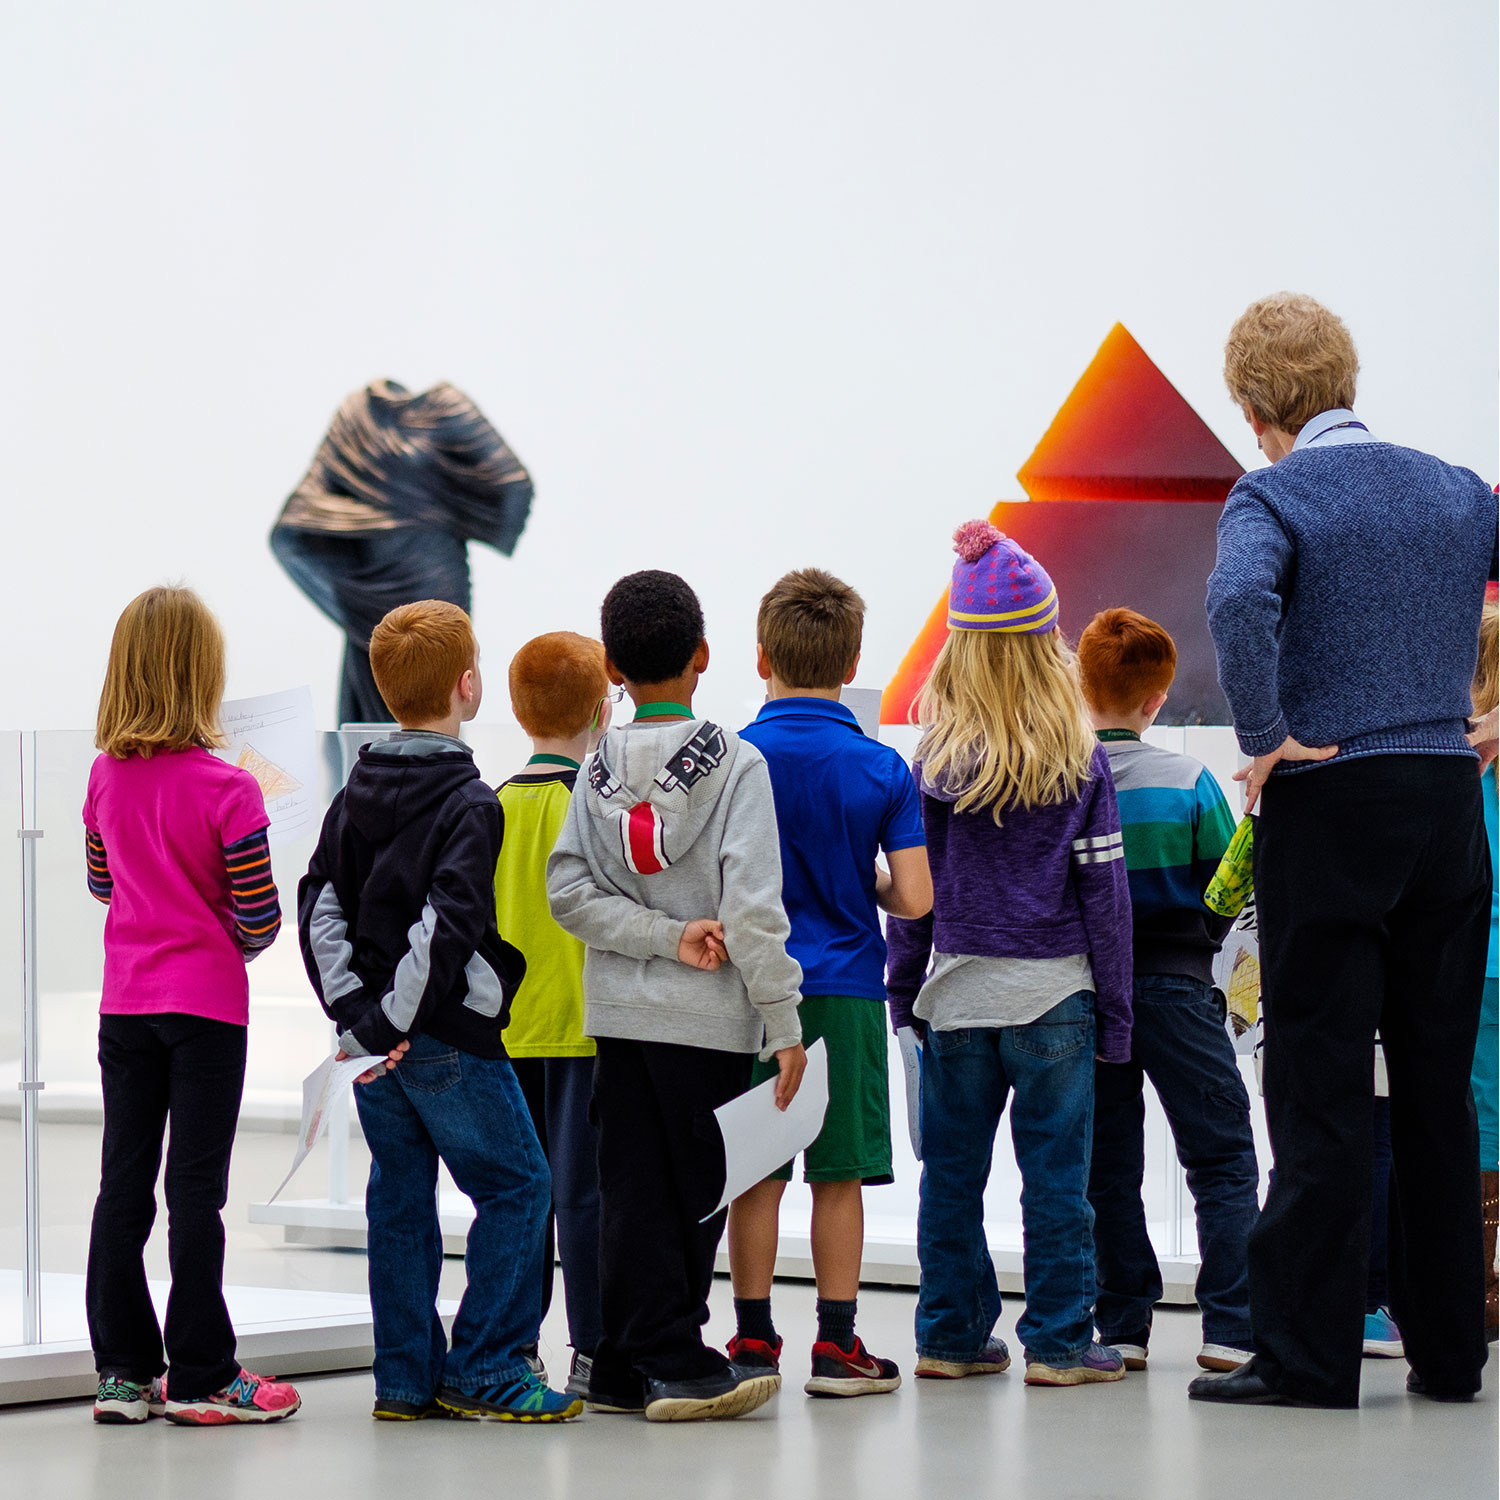 Docent giving a tour to a group of children